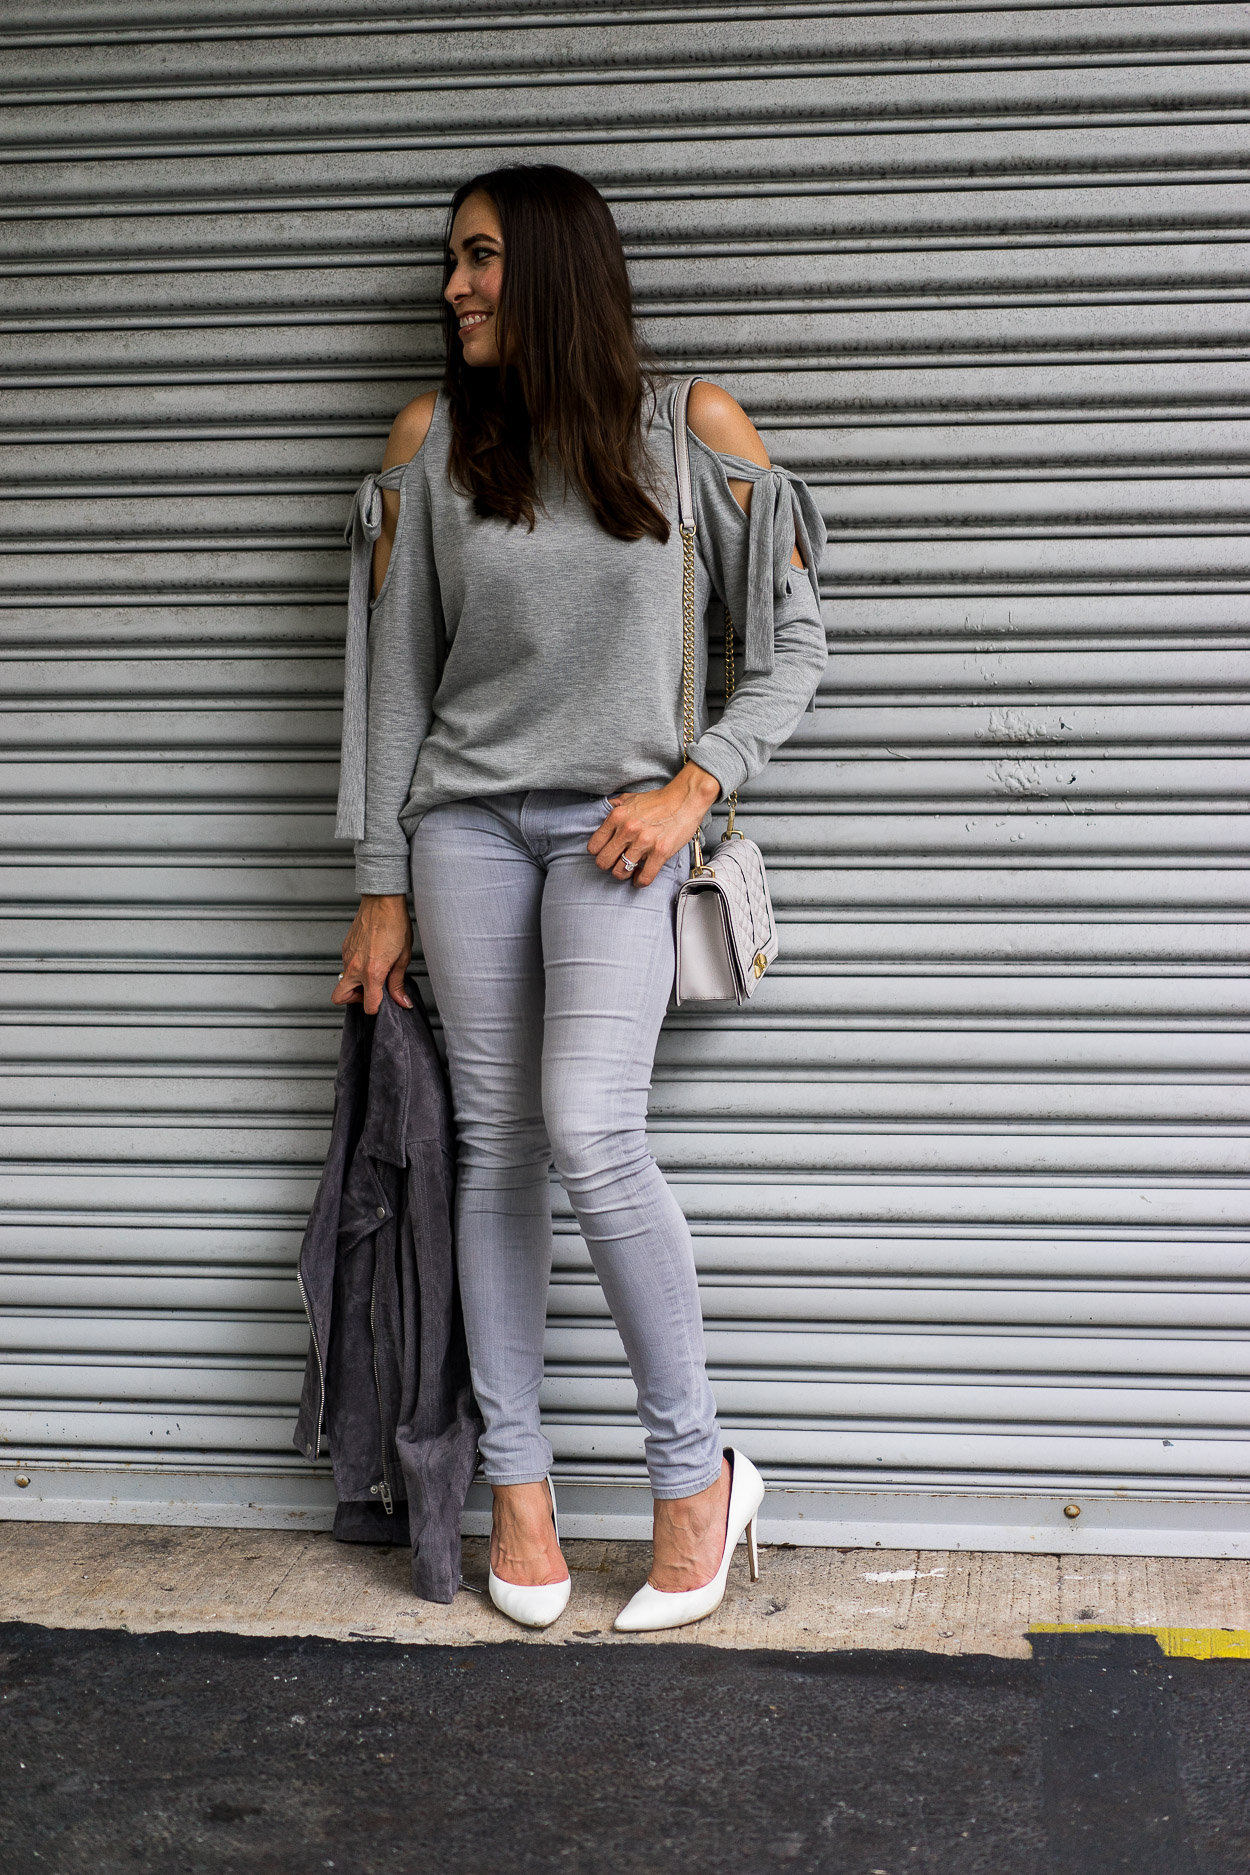 Last minute fave grey sweater from the Nordstrom Anniversary sale styled by Amanda of A Glam Lifestyle blog